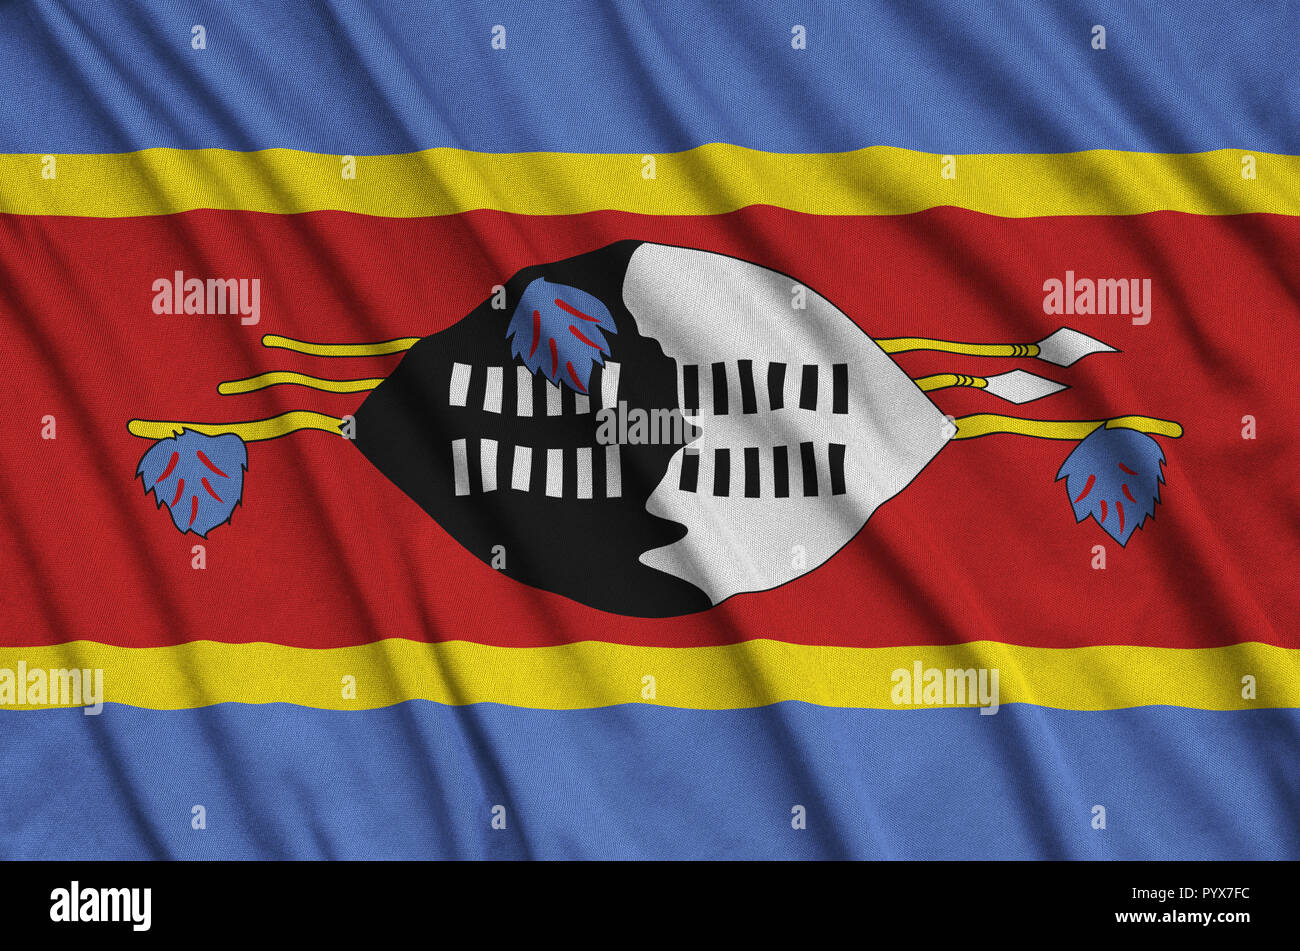 Swaziland flag  is depicted on a sports cloth fabric with many folds. Sport team waving banner Stock Photo